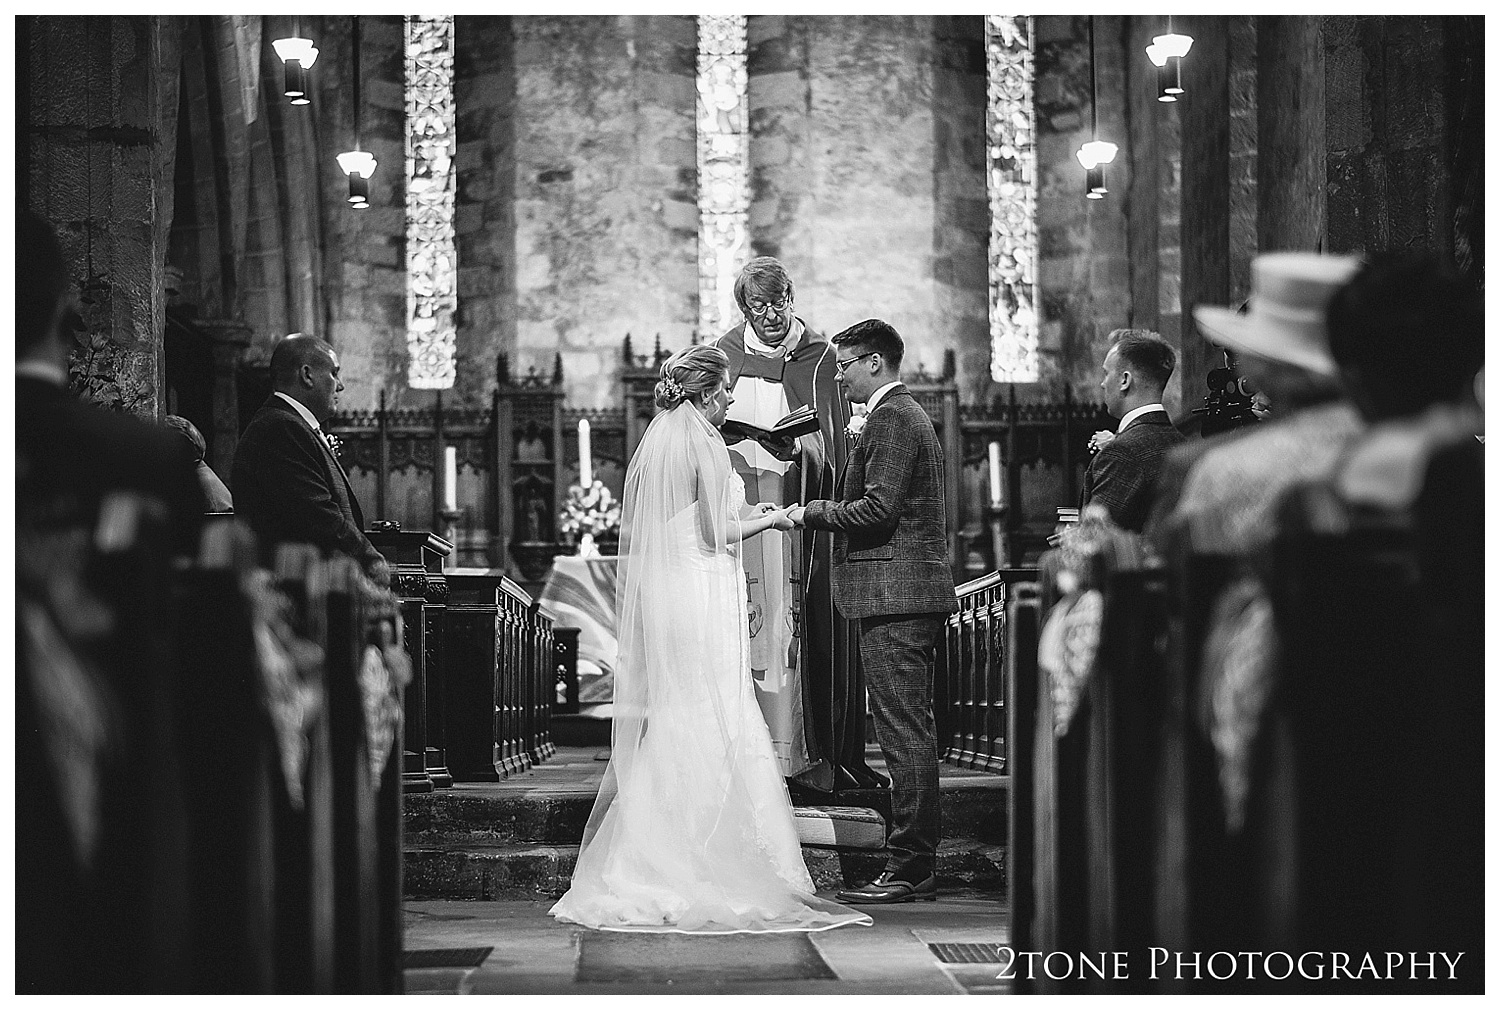 Healey Barm wedding photography 036.jpg